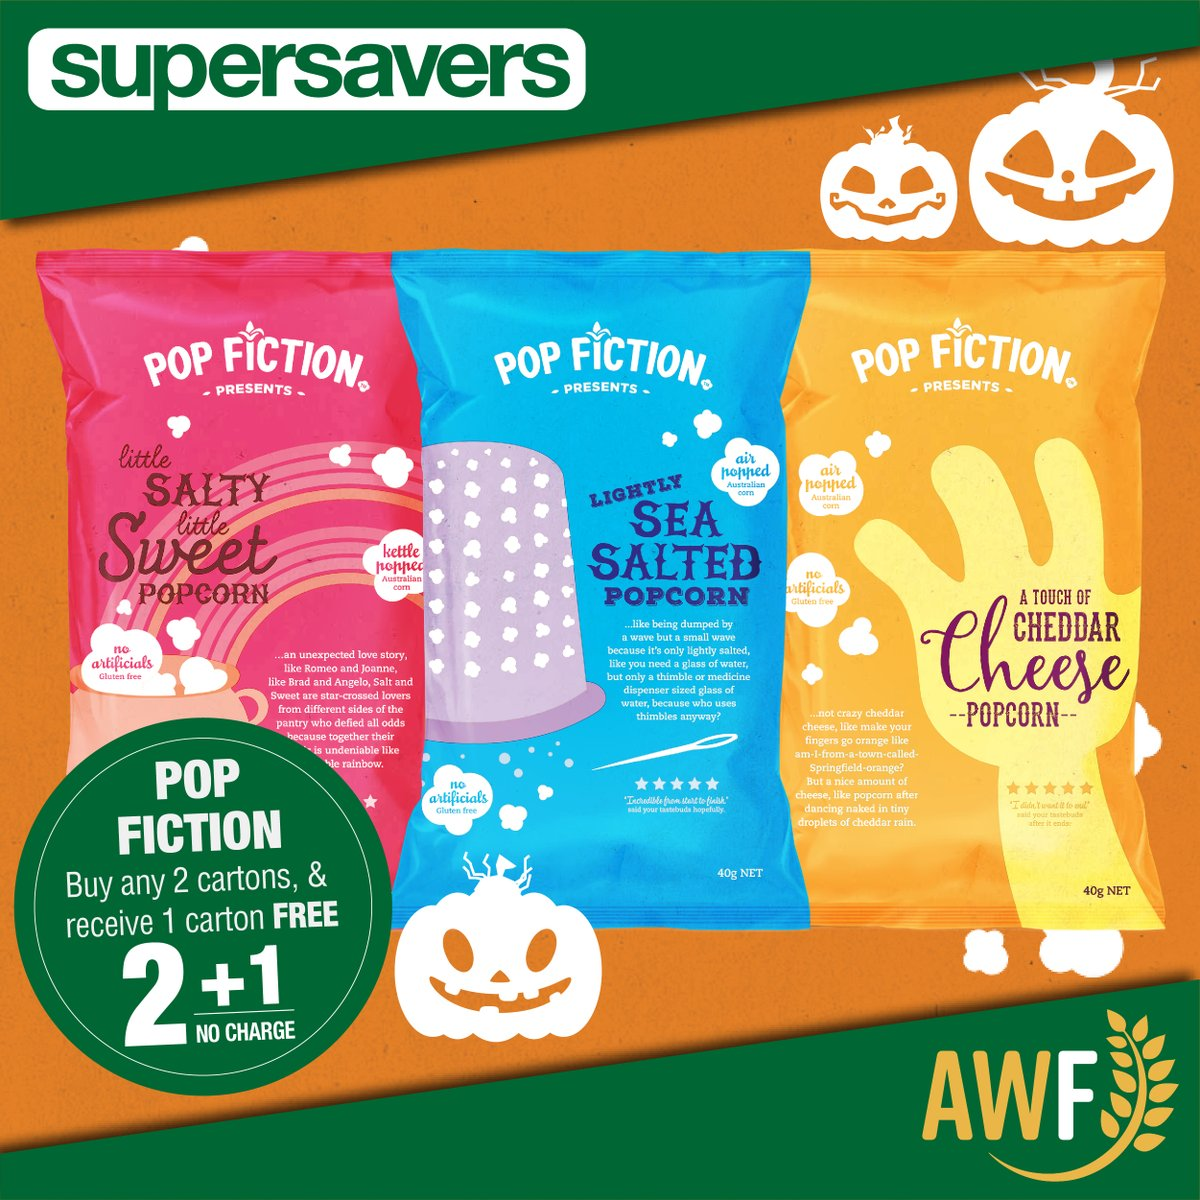 Did you know we are now selling #popfictionpopcorn ?   View it online: https://t.co/4JQiBKD4hX ------------- 📞 Call us: (08) 9041 1424 📧 Email: sales@allwaysfoods.com.au #supersavers #AWF #AllwaysFoods #warehouse #merredin #popcorn #airpopped https://t.co/OQnoyOTM5P https://t.co/Plu4OqX7vX